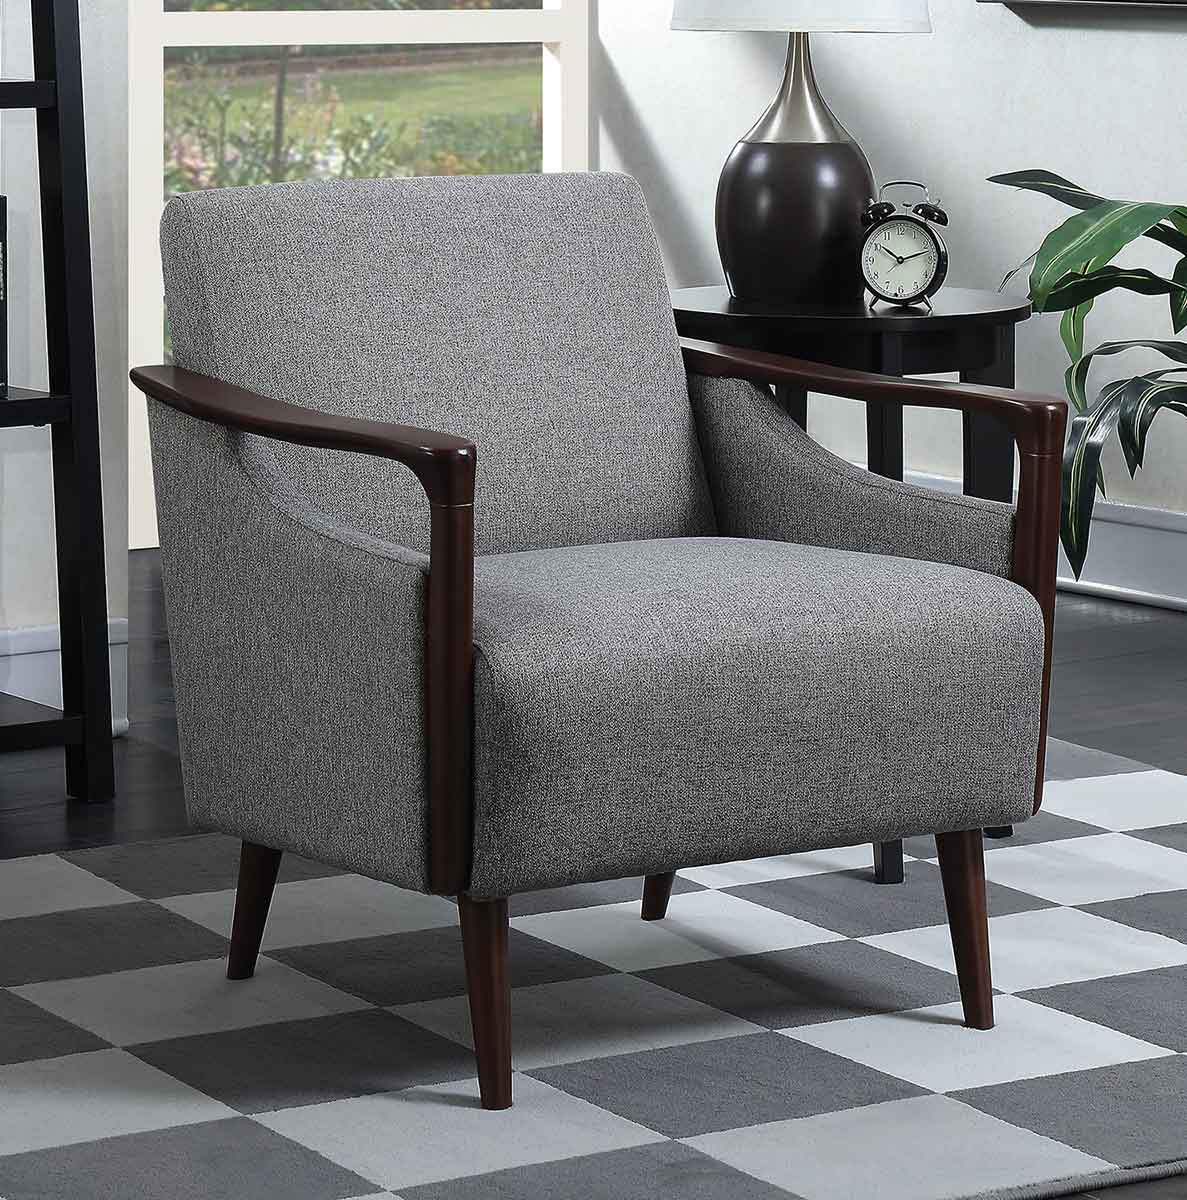 Coaster 904046 Accent Chair - Grey/Brown